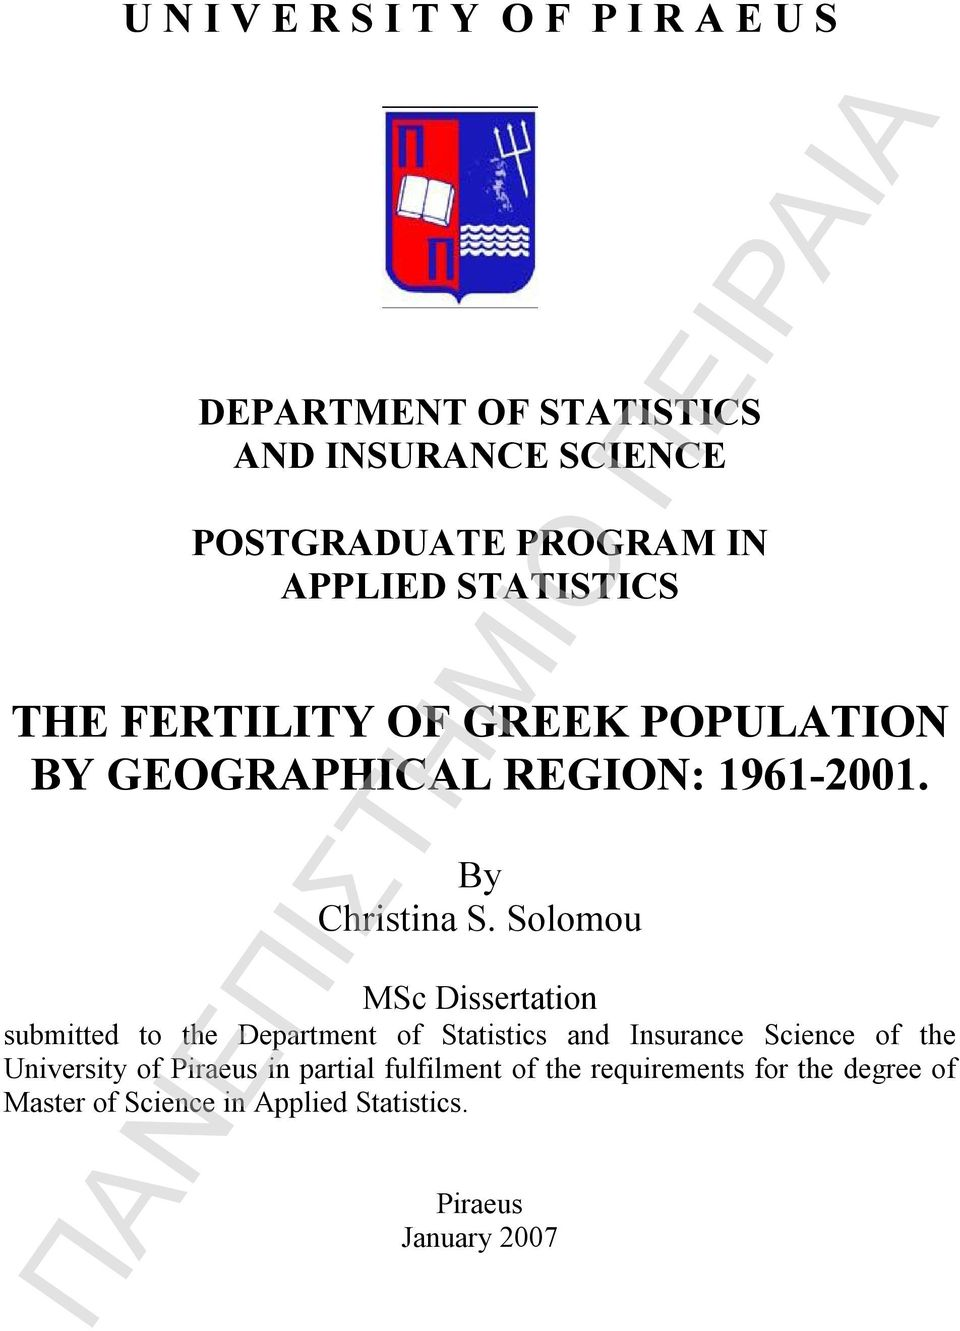 Solomou MSc Dissertation submitted to the Department of Statistics and Insurance Science of the University of